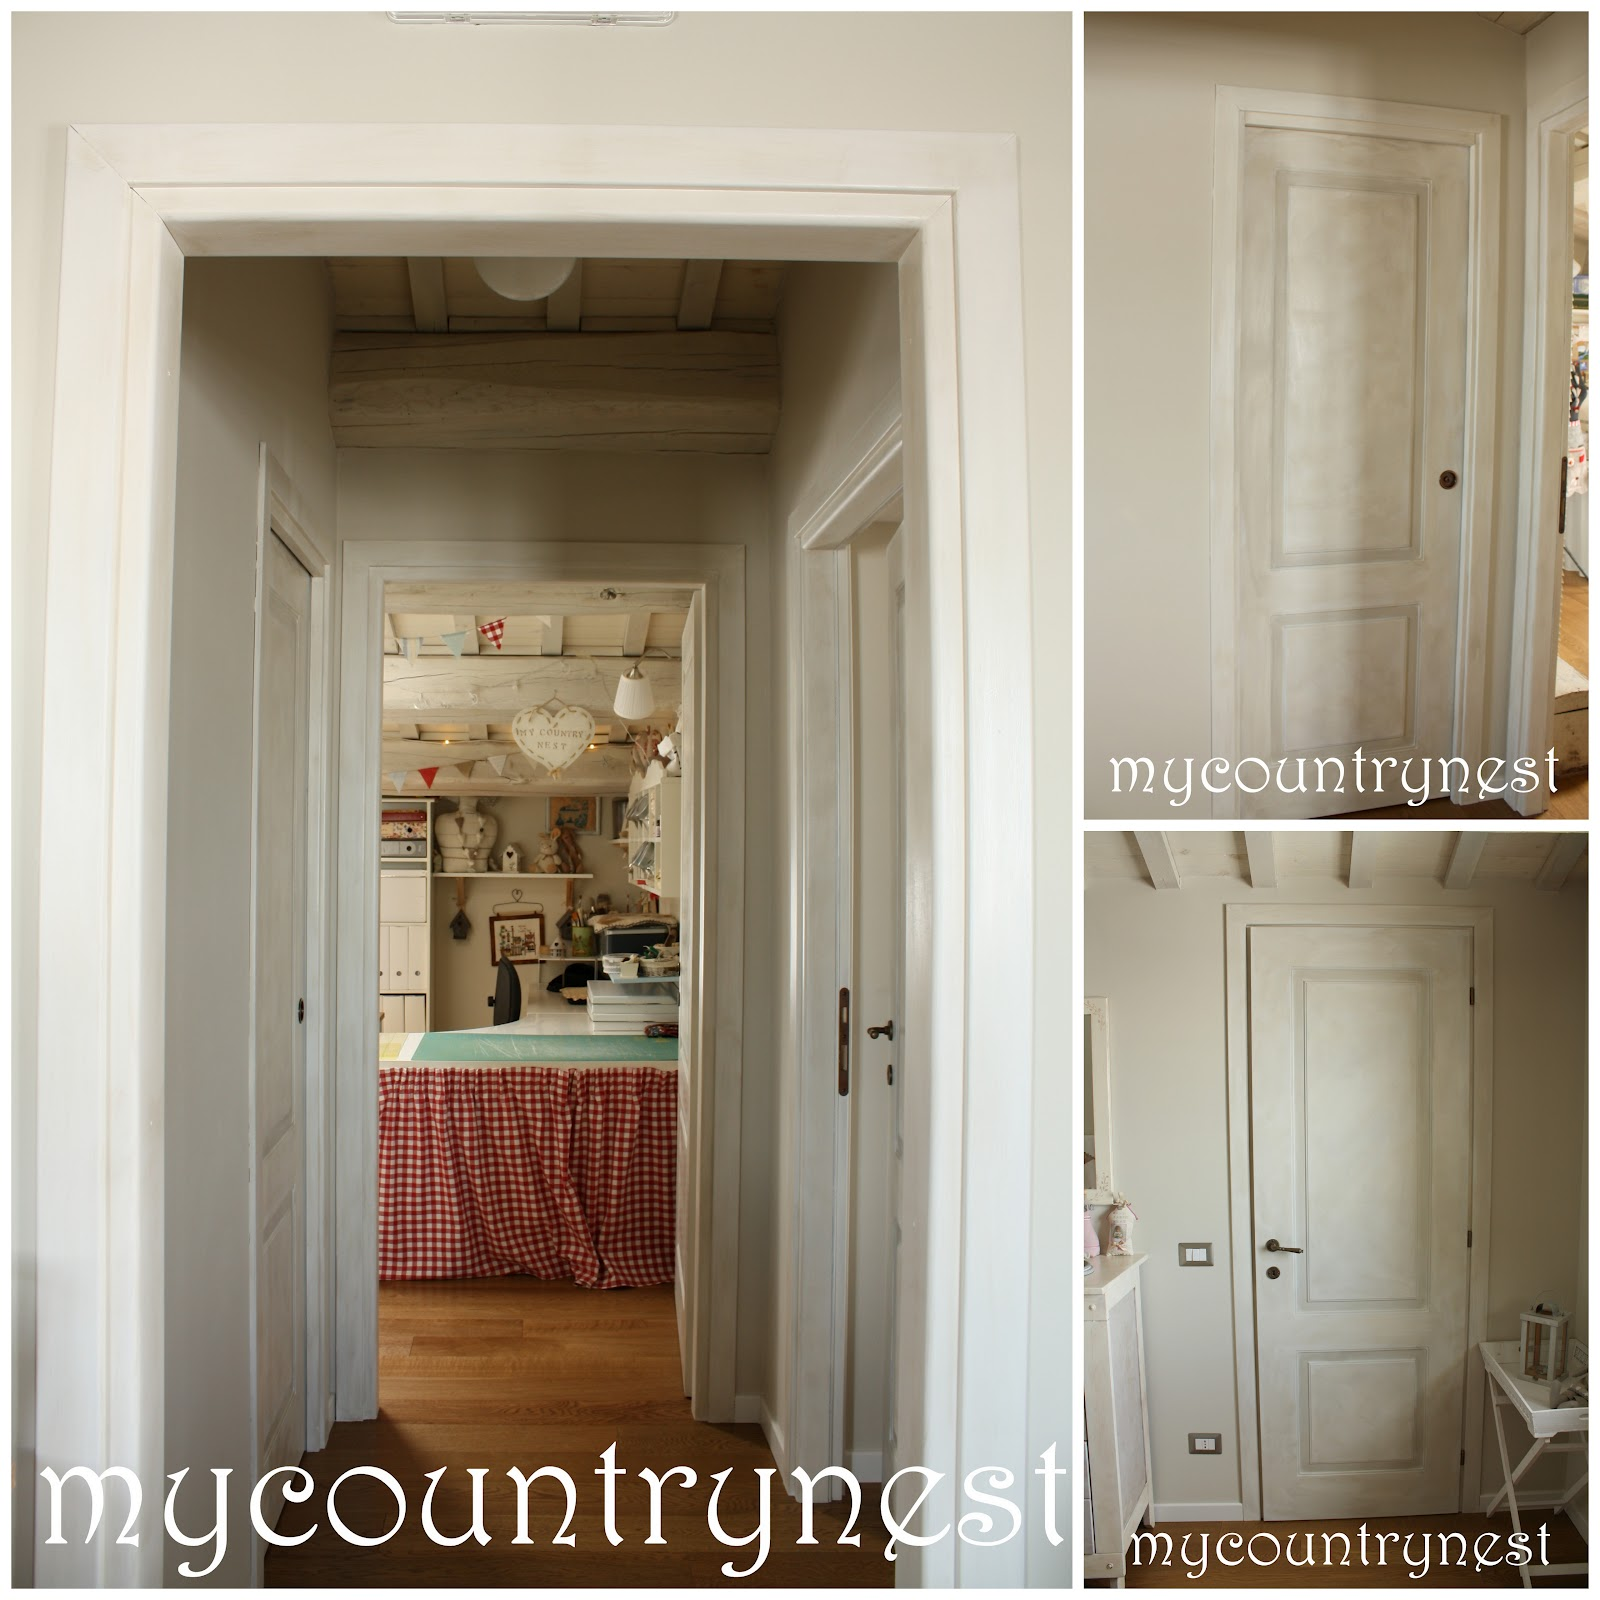 My country nest effetto country shabby per le porte di - Porte country chic ...